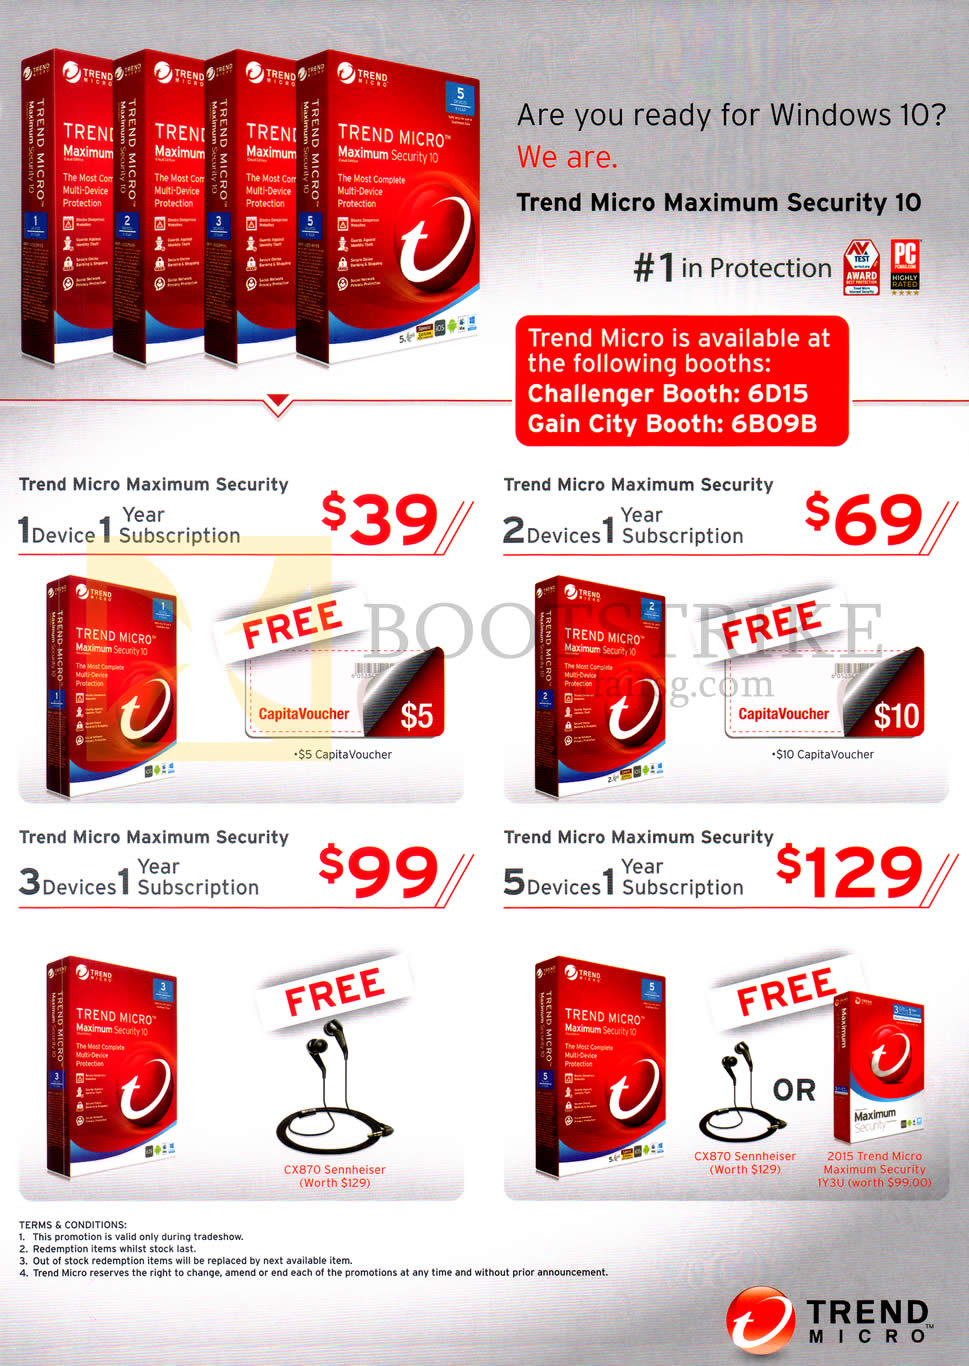 SITEX 2015 price list image brochure of Trend Micro Maximum Security 10, 1, 2, 3, 5, Devices 1 Subscription